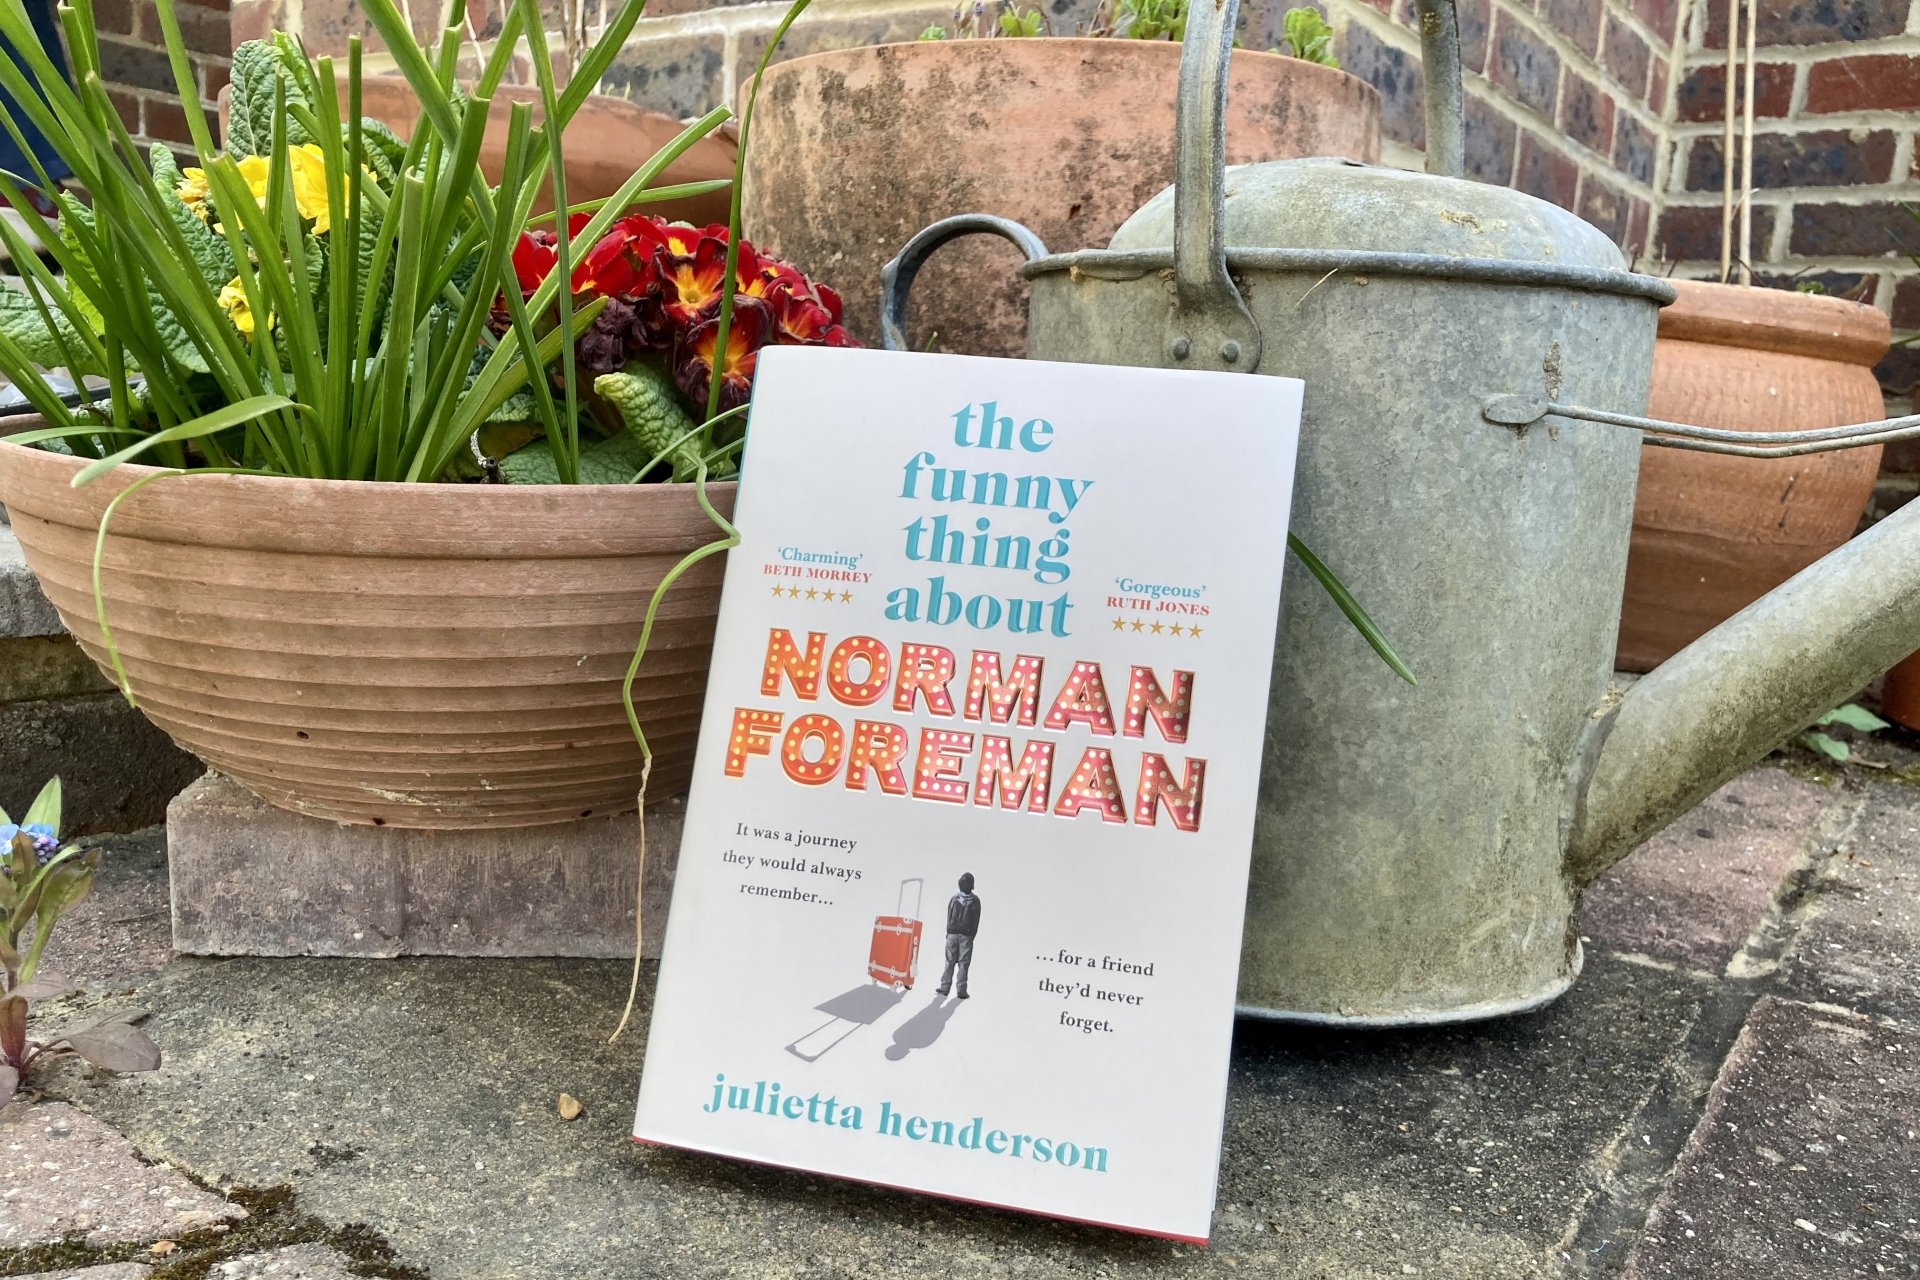 May 2021 Book Club Recommendation: The Funny Thing About Norman Foreman by Julietta Henderson